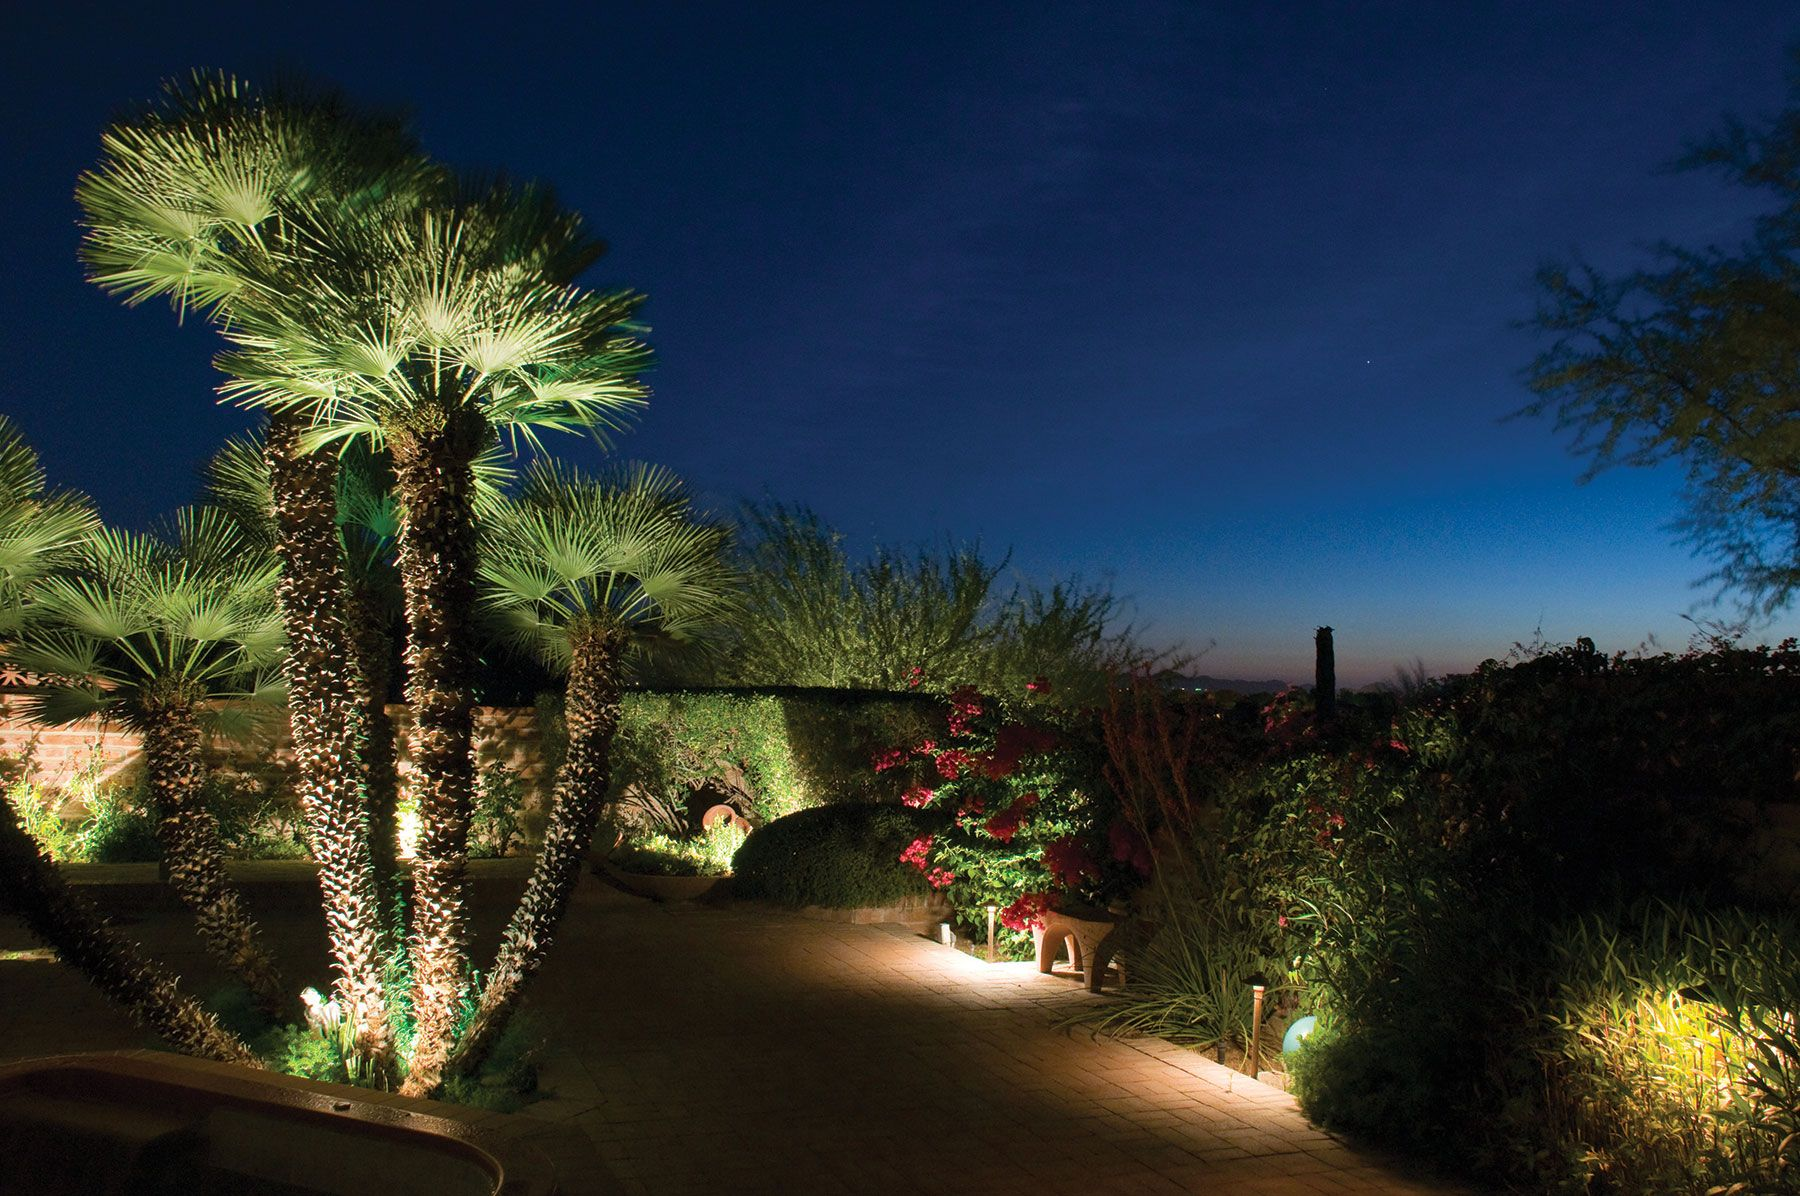 Inspiration Galleries Outdoor And Landscape Lighting Photos Outdoor Lighting Pe Outdoor Landscape Lighting Solar Landscape Lighting Landscape Lighting Kits